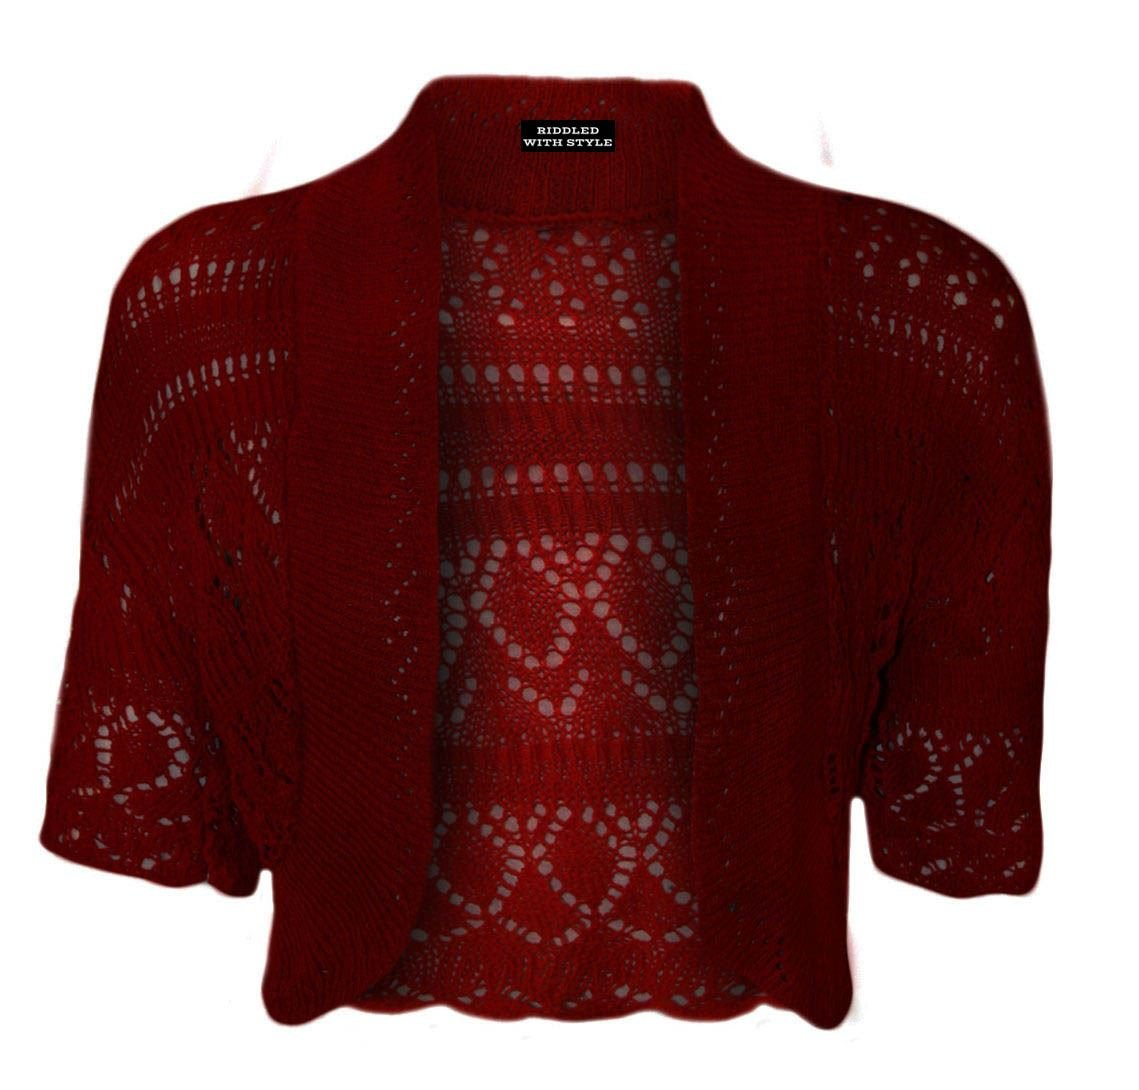 NEW LADIES PLUS SIZE KNITTED CROCHET BOLERO SHRUGS WOMENS CARDIGAN TOPS 16-26 RIDDLED WITH STYLE